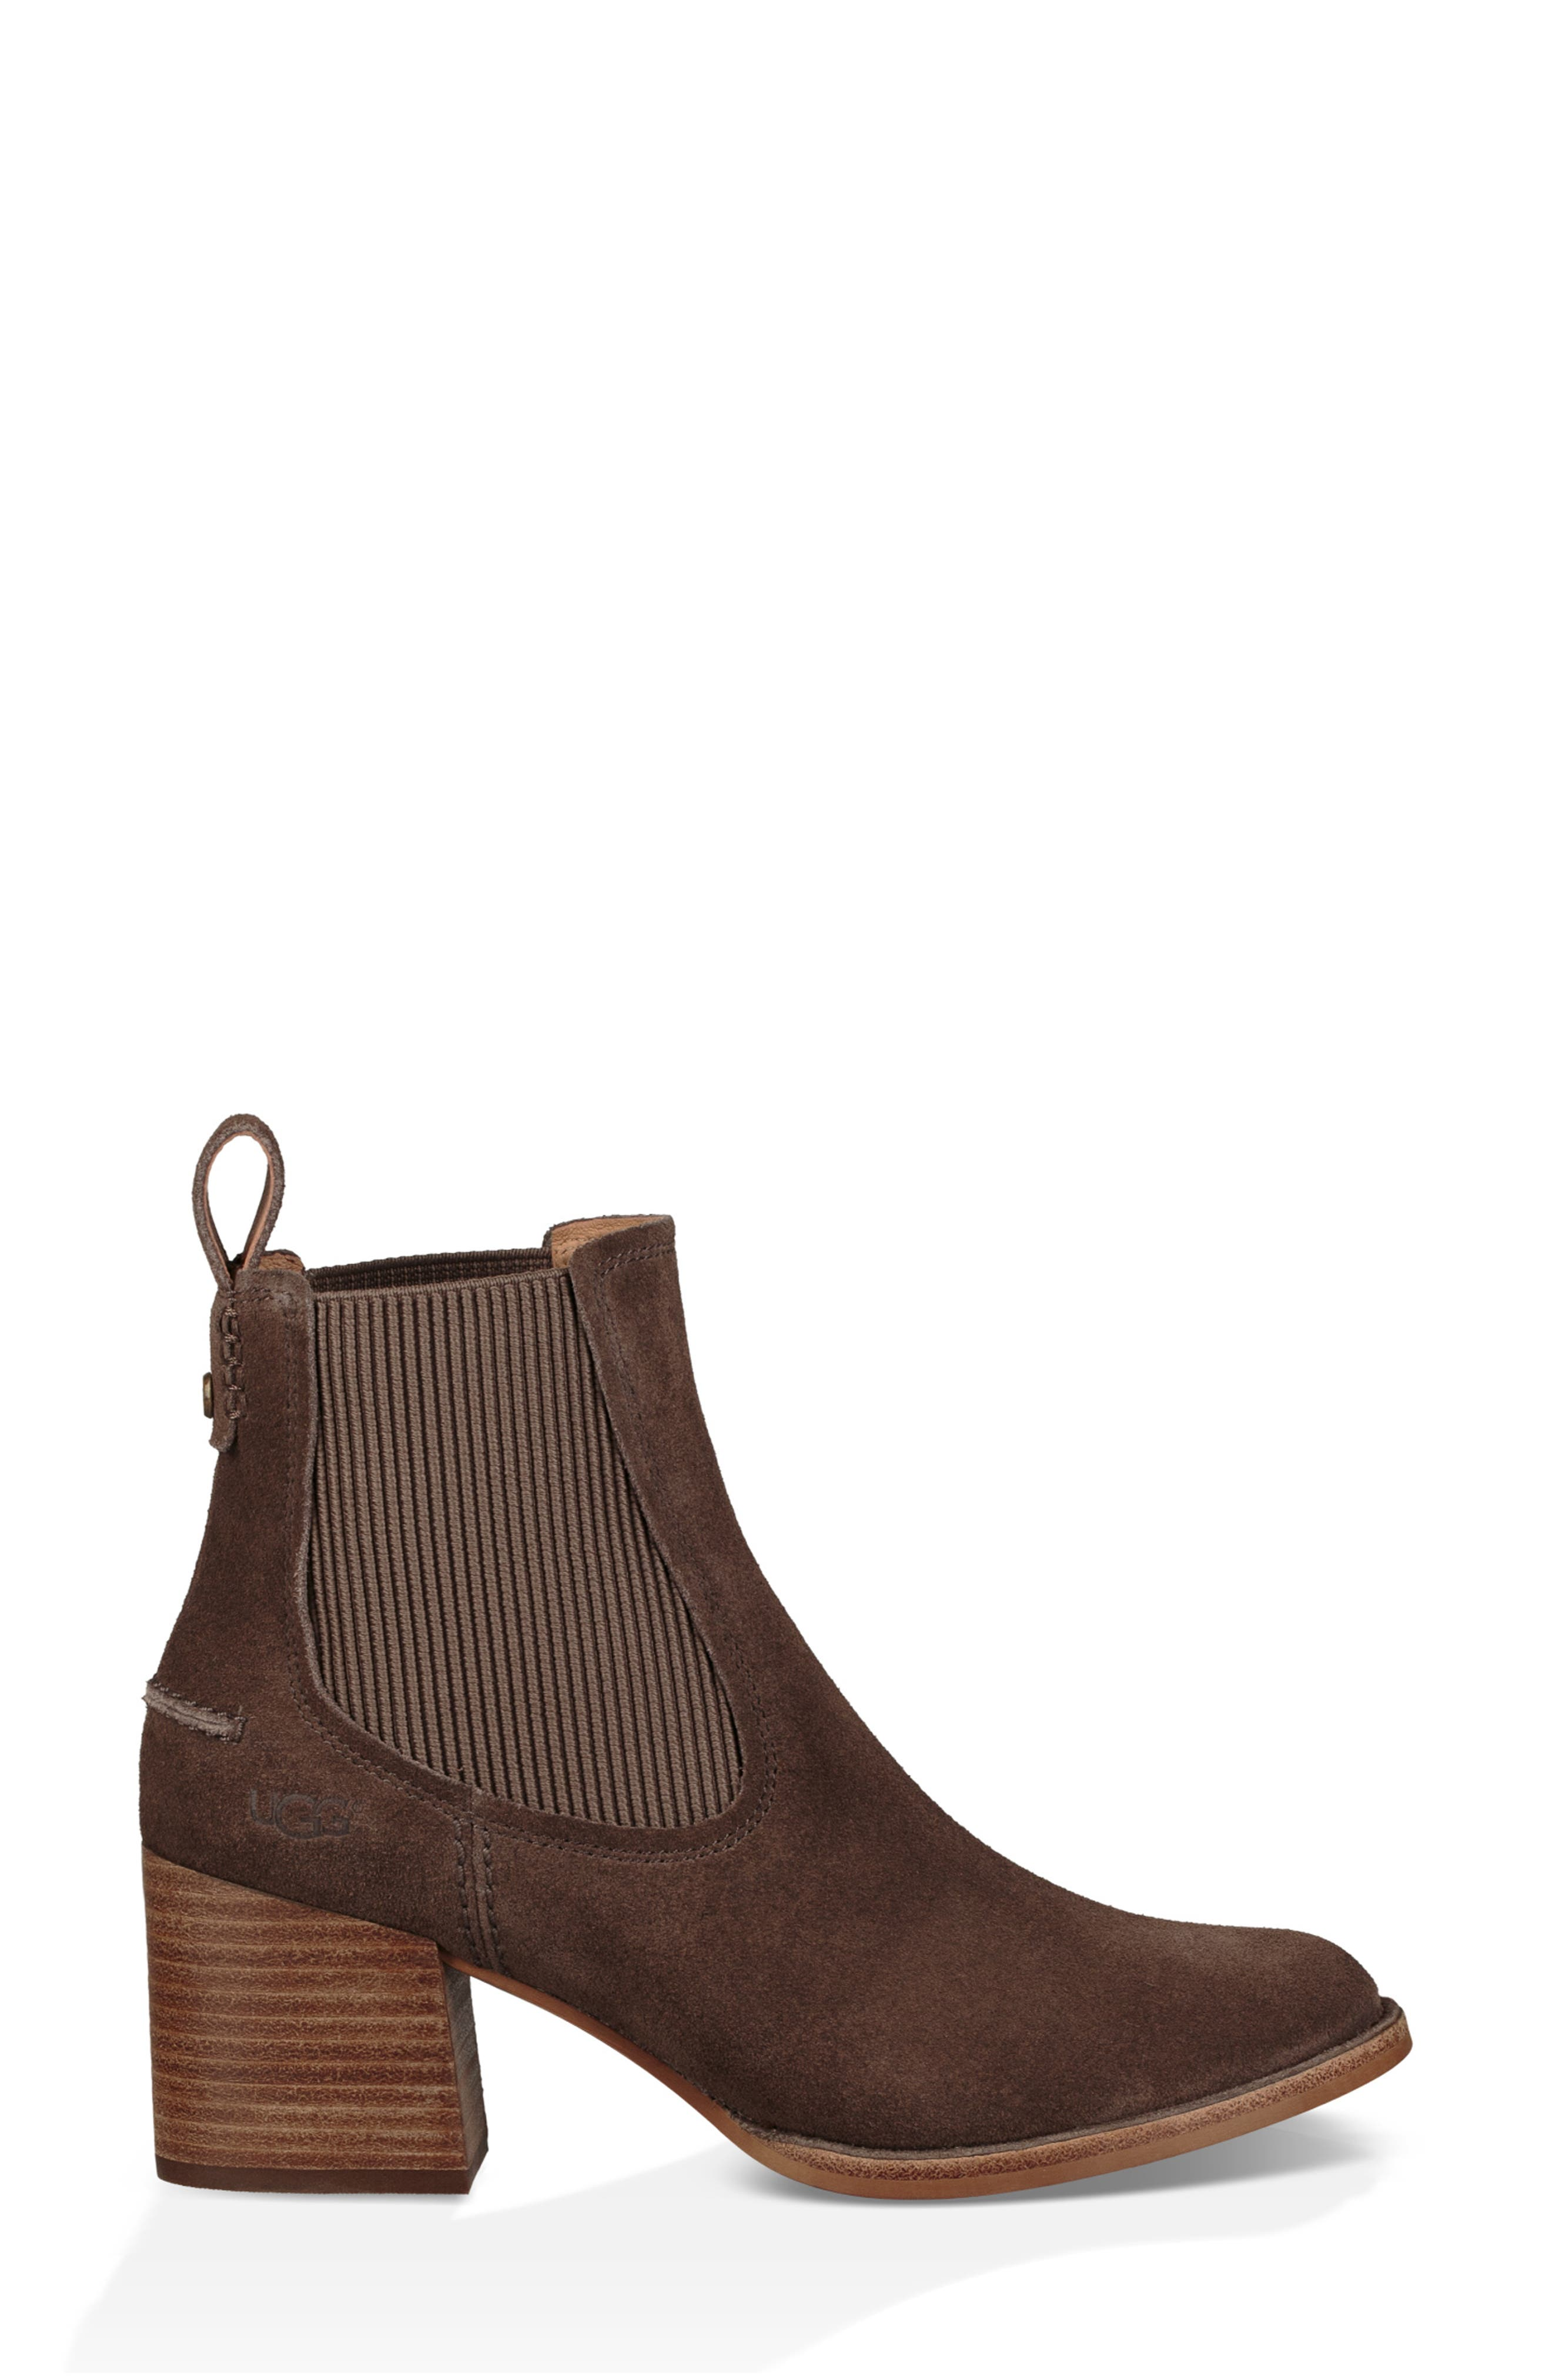 Faye Chelsea Bootie,                             Alternate thumbnail 3, color,                             MYSTERIOUS SUEDE